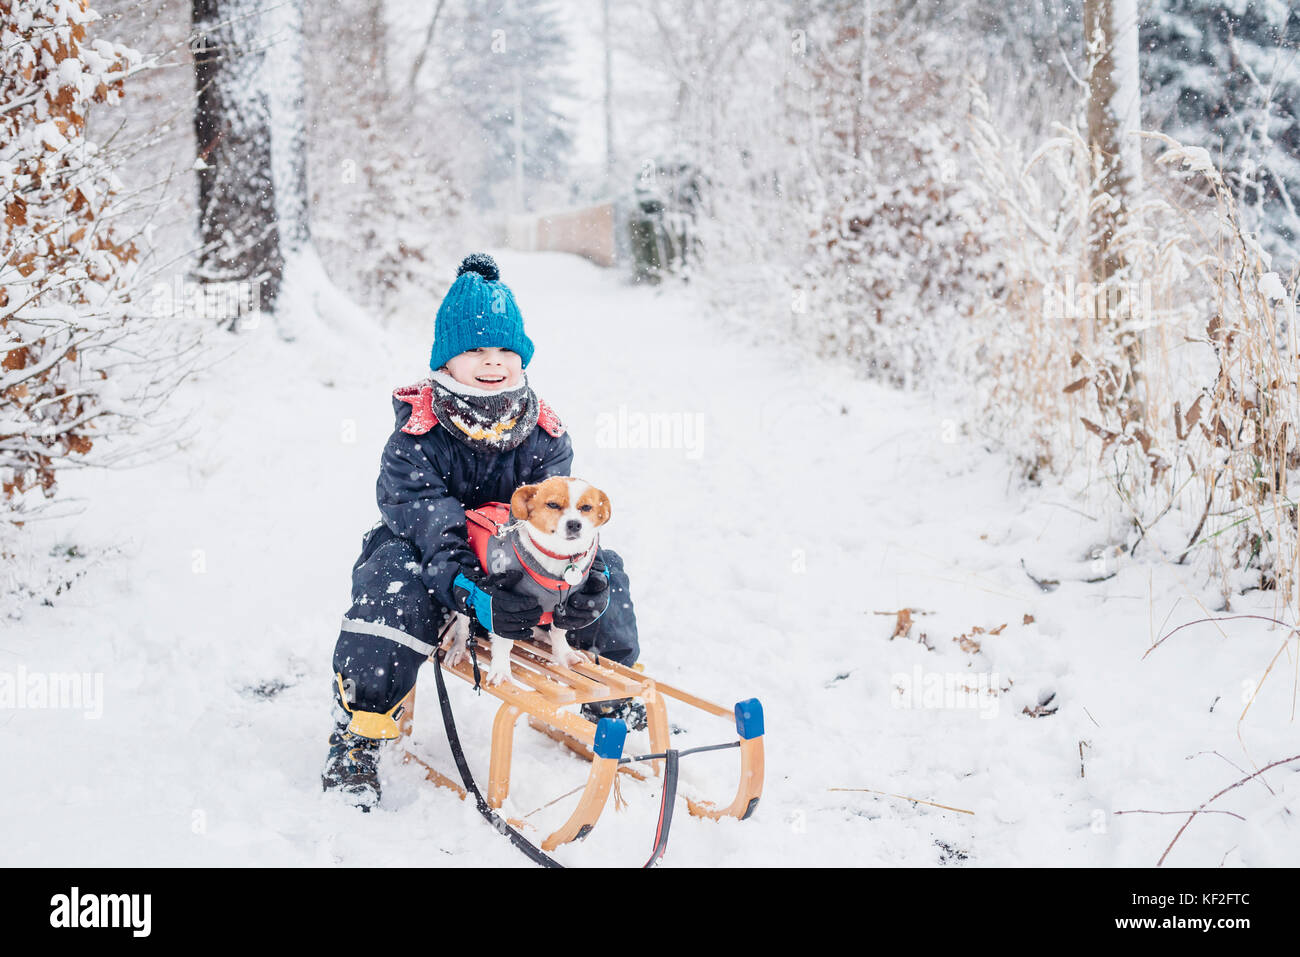 Little boy with his dog on a sledge in snow - Stock Image